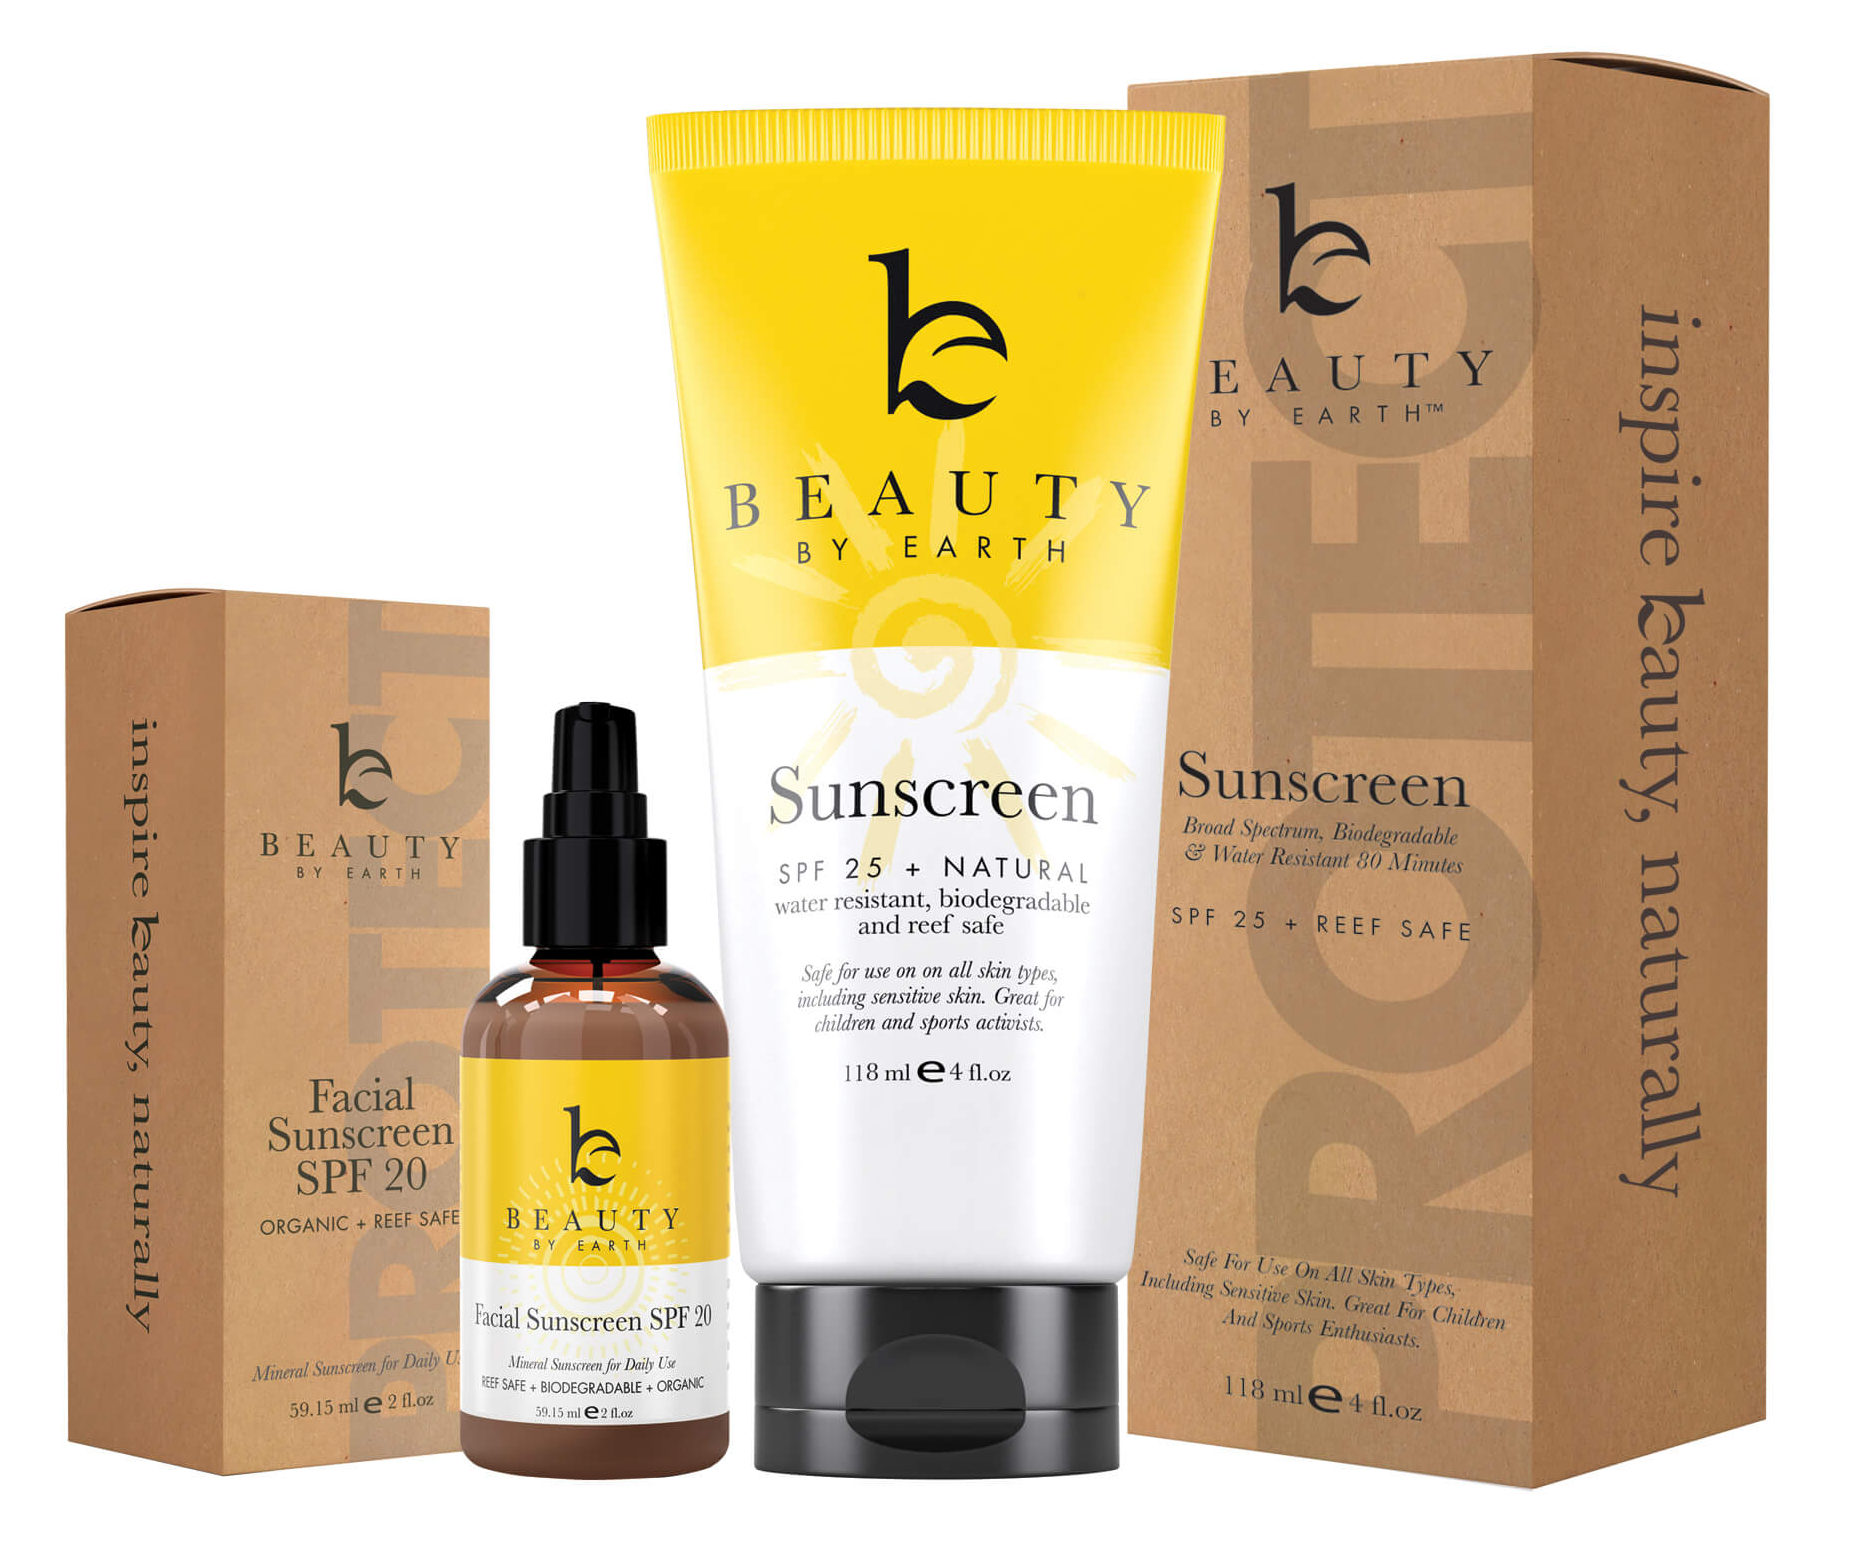 Beauty by Earth Sunscreen | smelltheroses.com